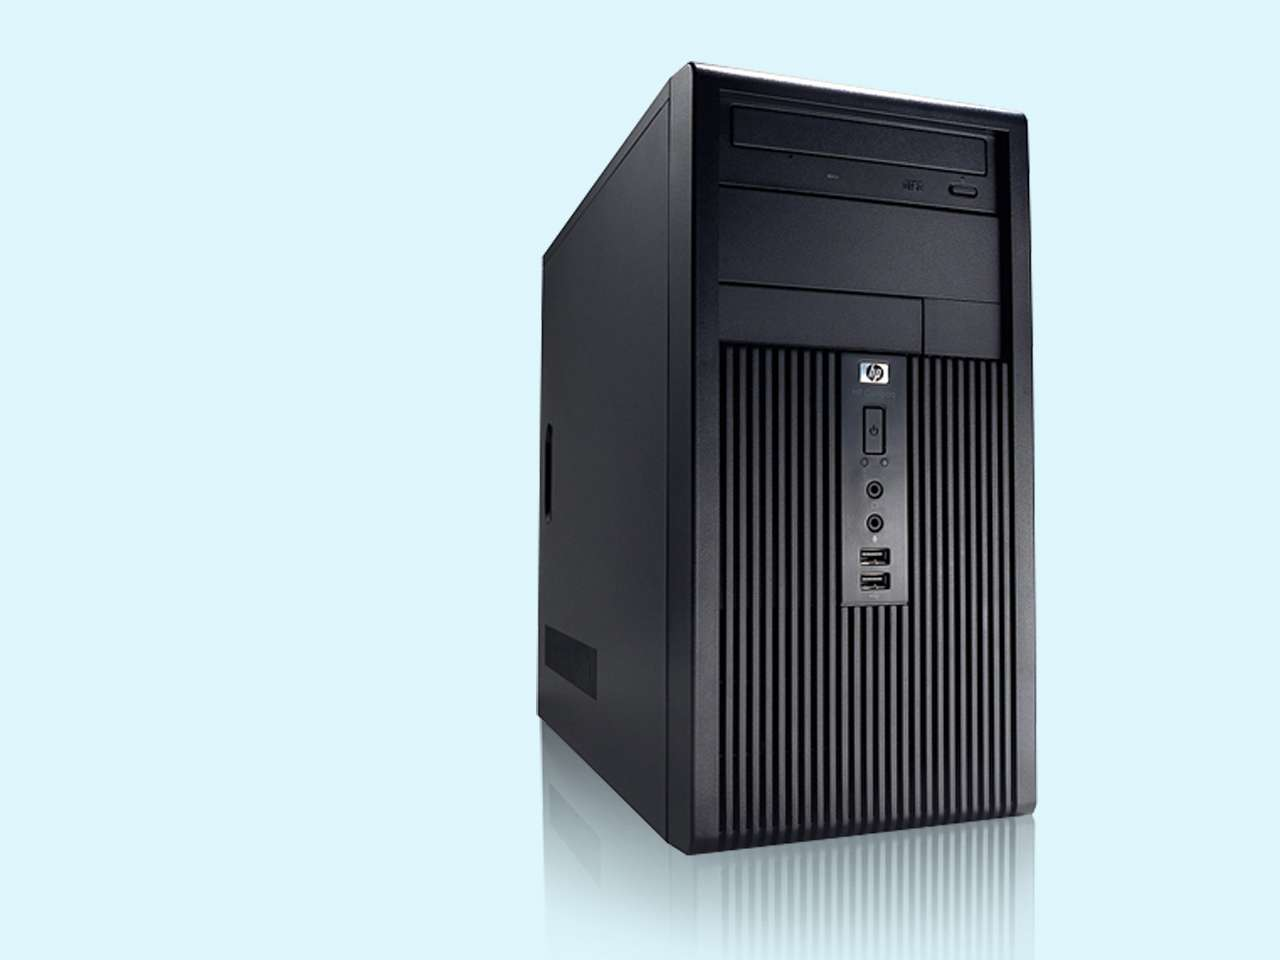 HP COMPAQ DX2300 MODEM WINDOWS